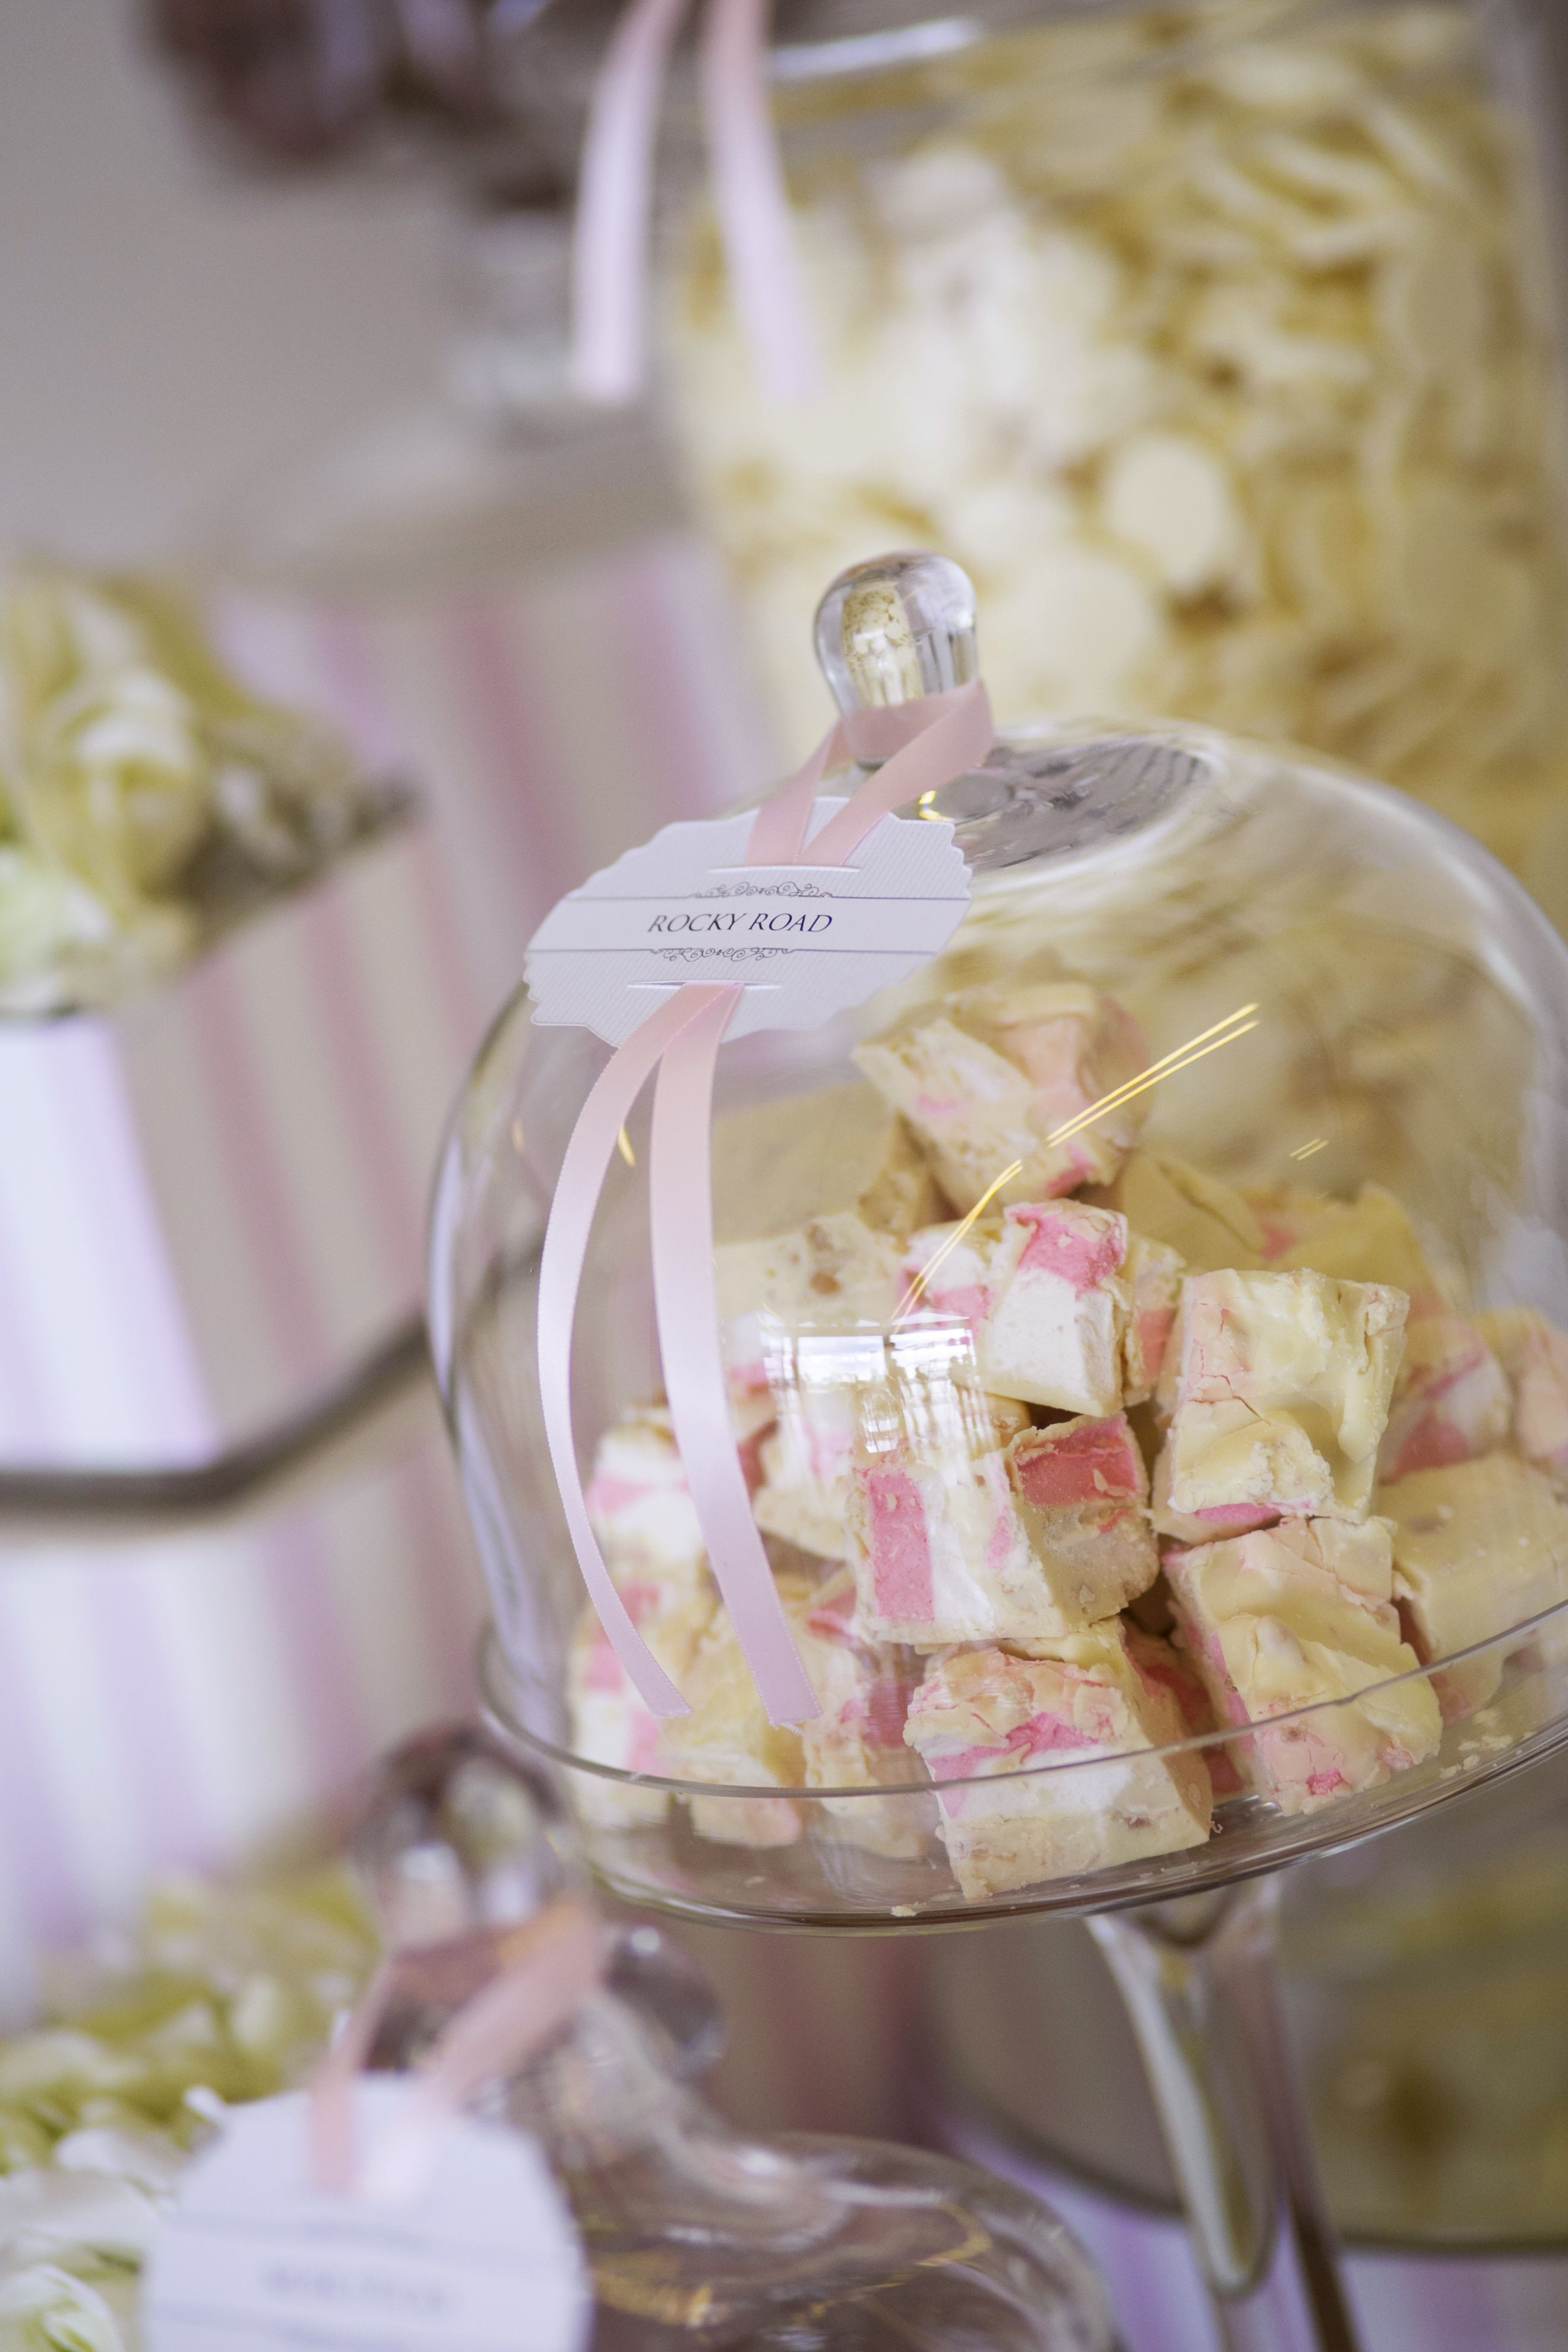 Rockyroad 1 of sweet on wedding dessert table | itakeyou.co.uk